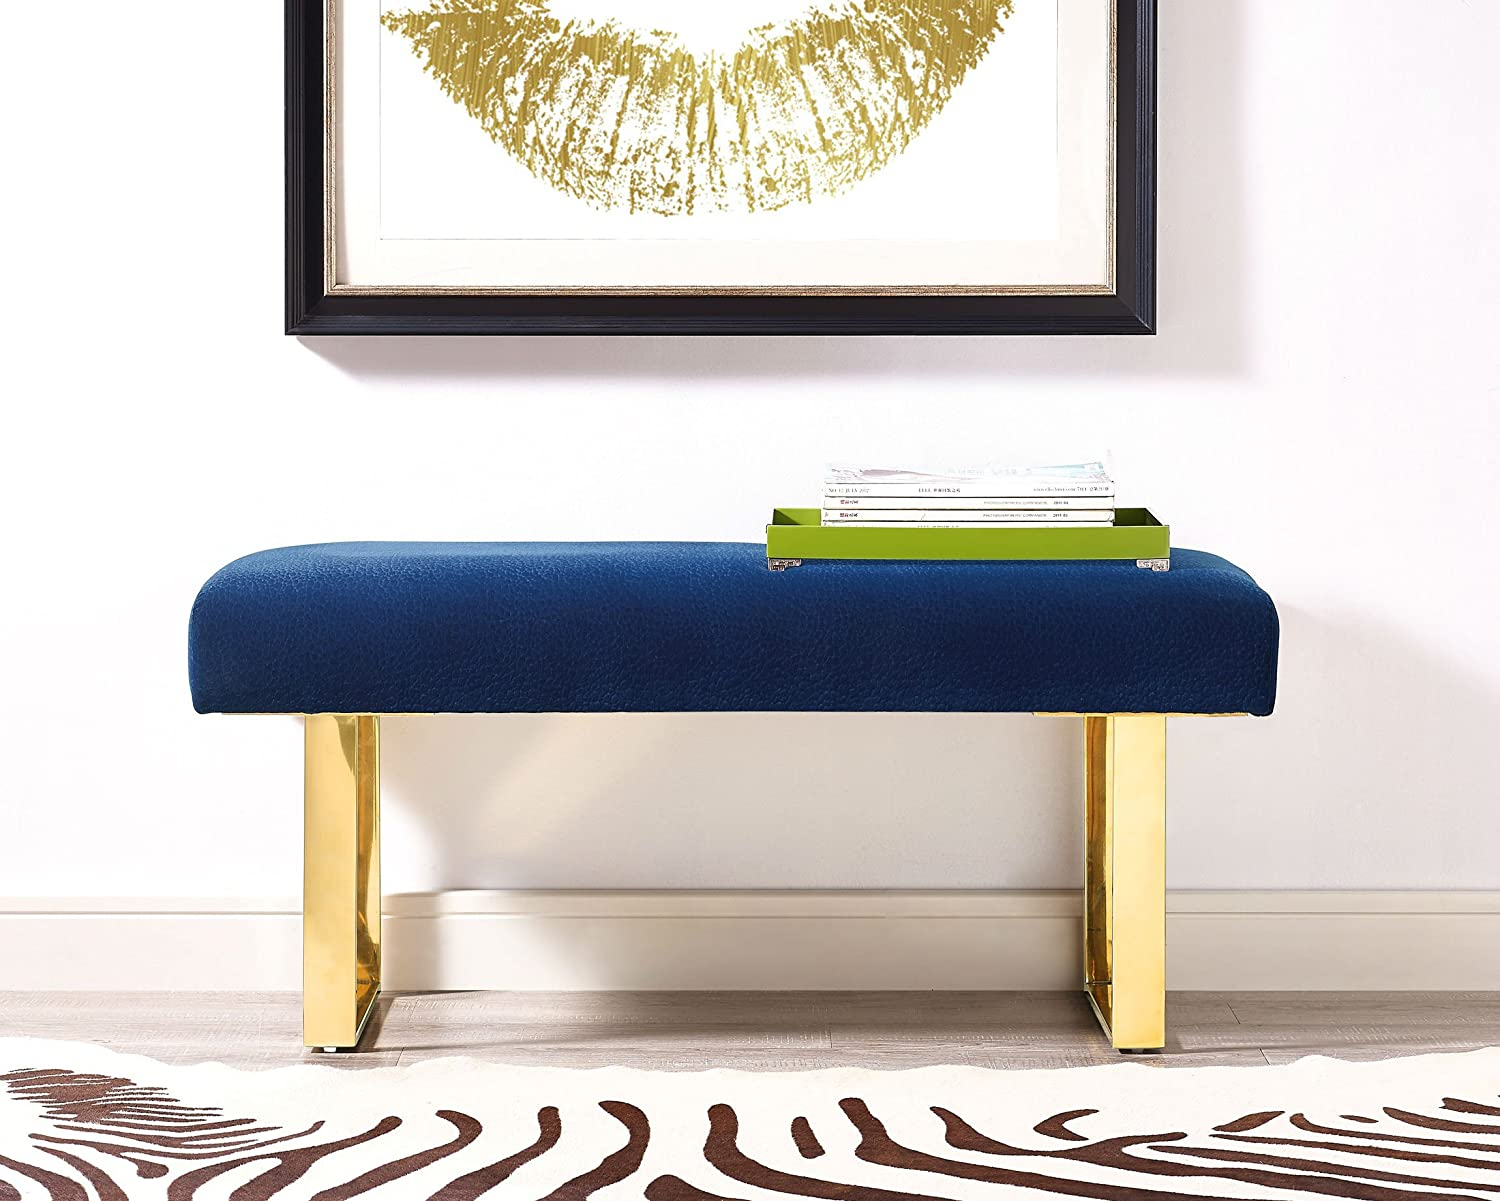 Amazon com living room furniture standard benches modern alexis blue velvet bench gold leg handmade tov o69 40 2 w x 16 d x 18 h kitchen dining